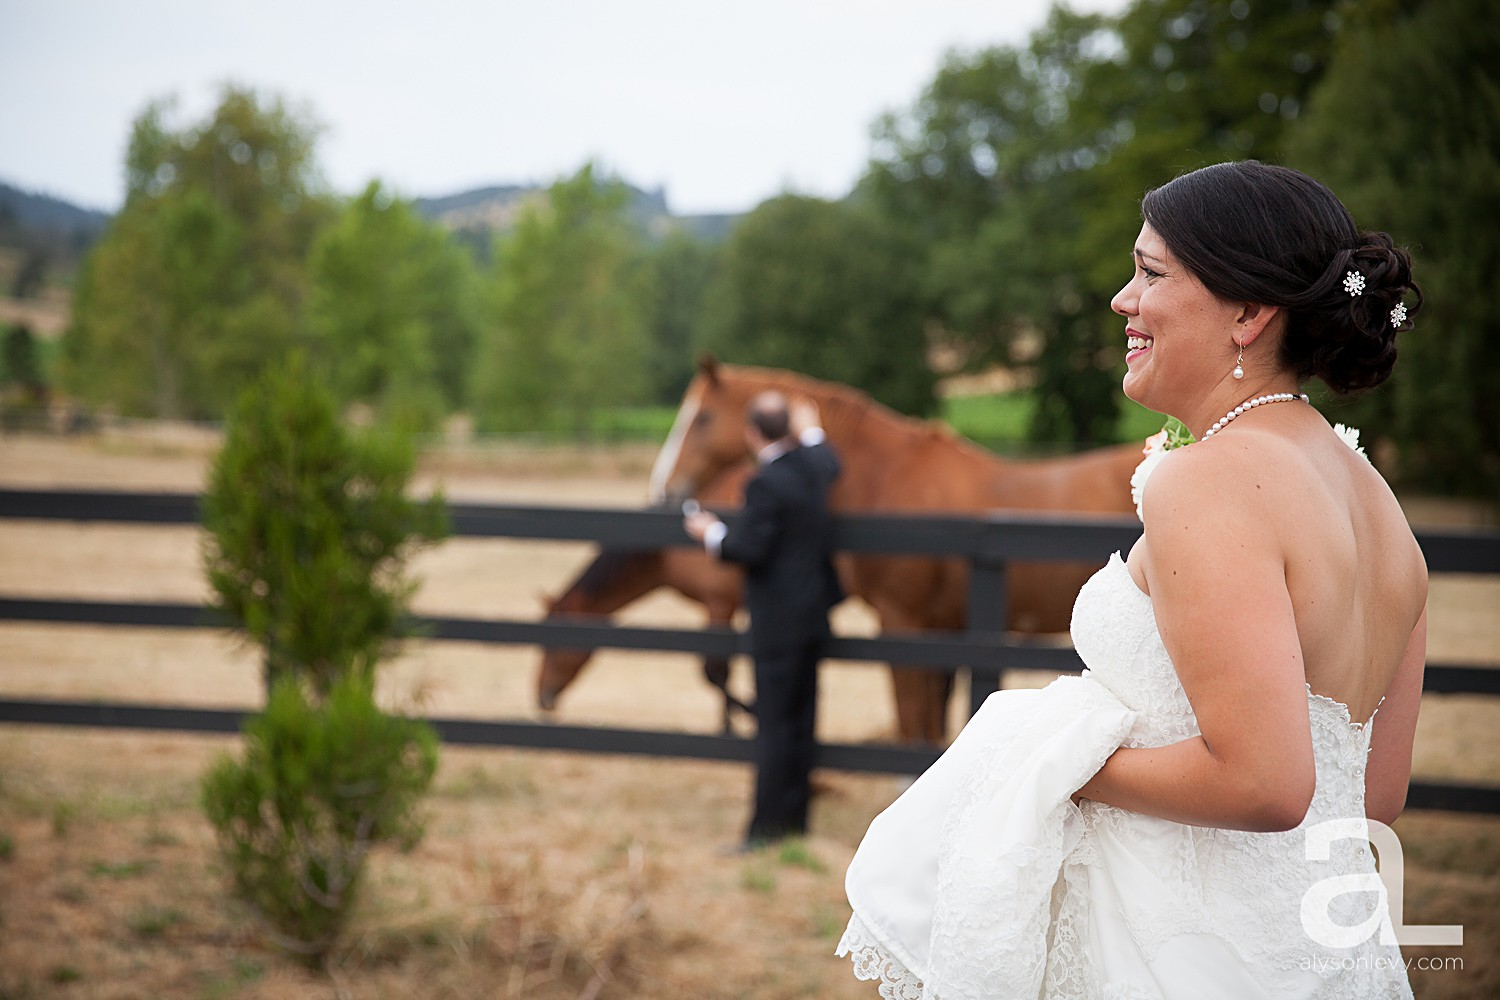 Zenith-Vineyards-Wedding-Photography_0017.jpg